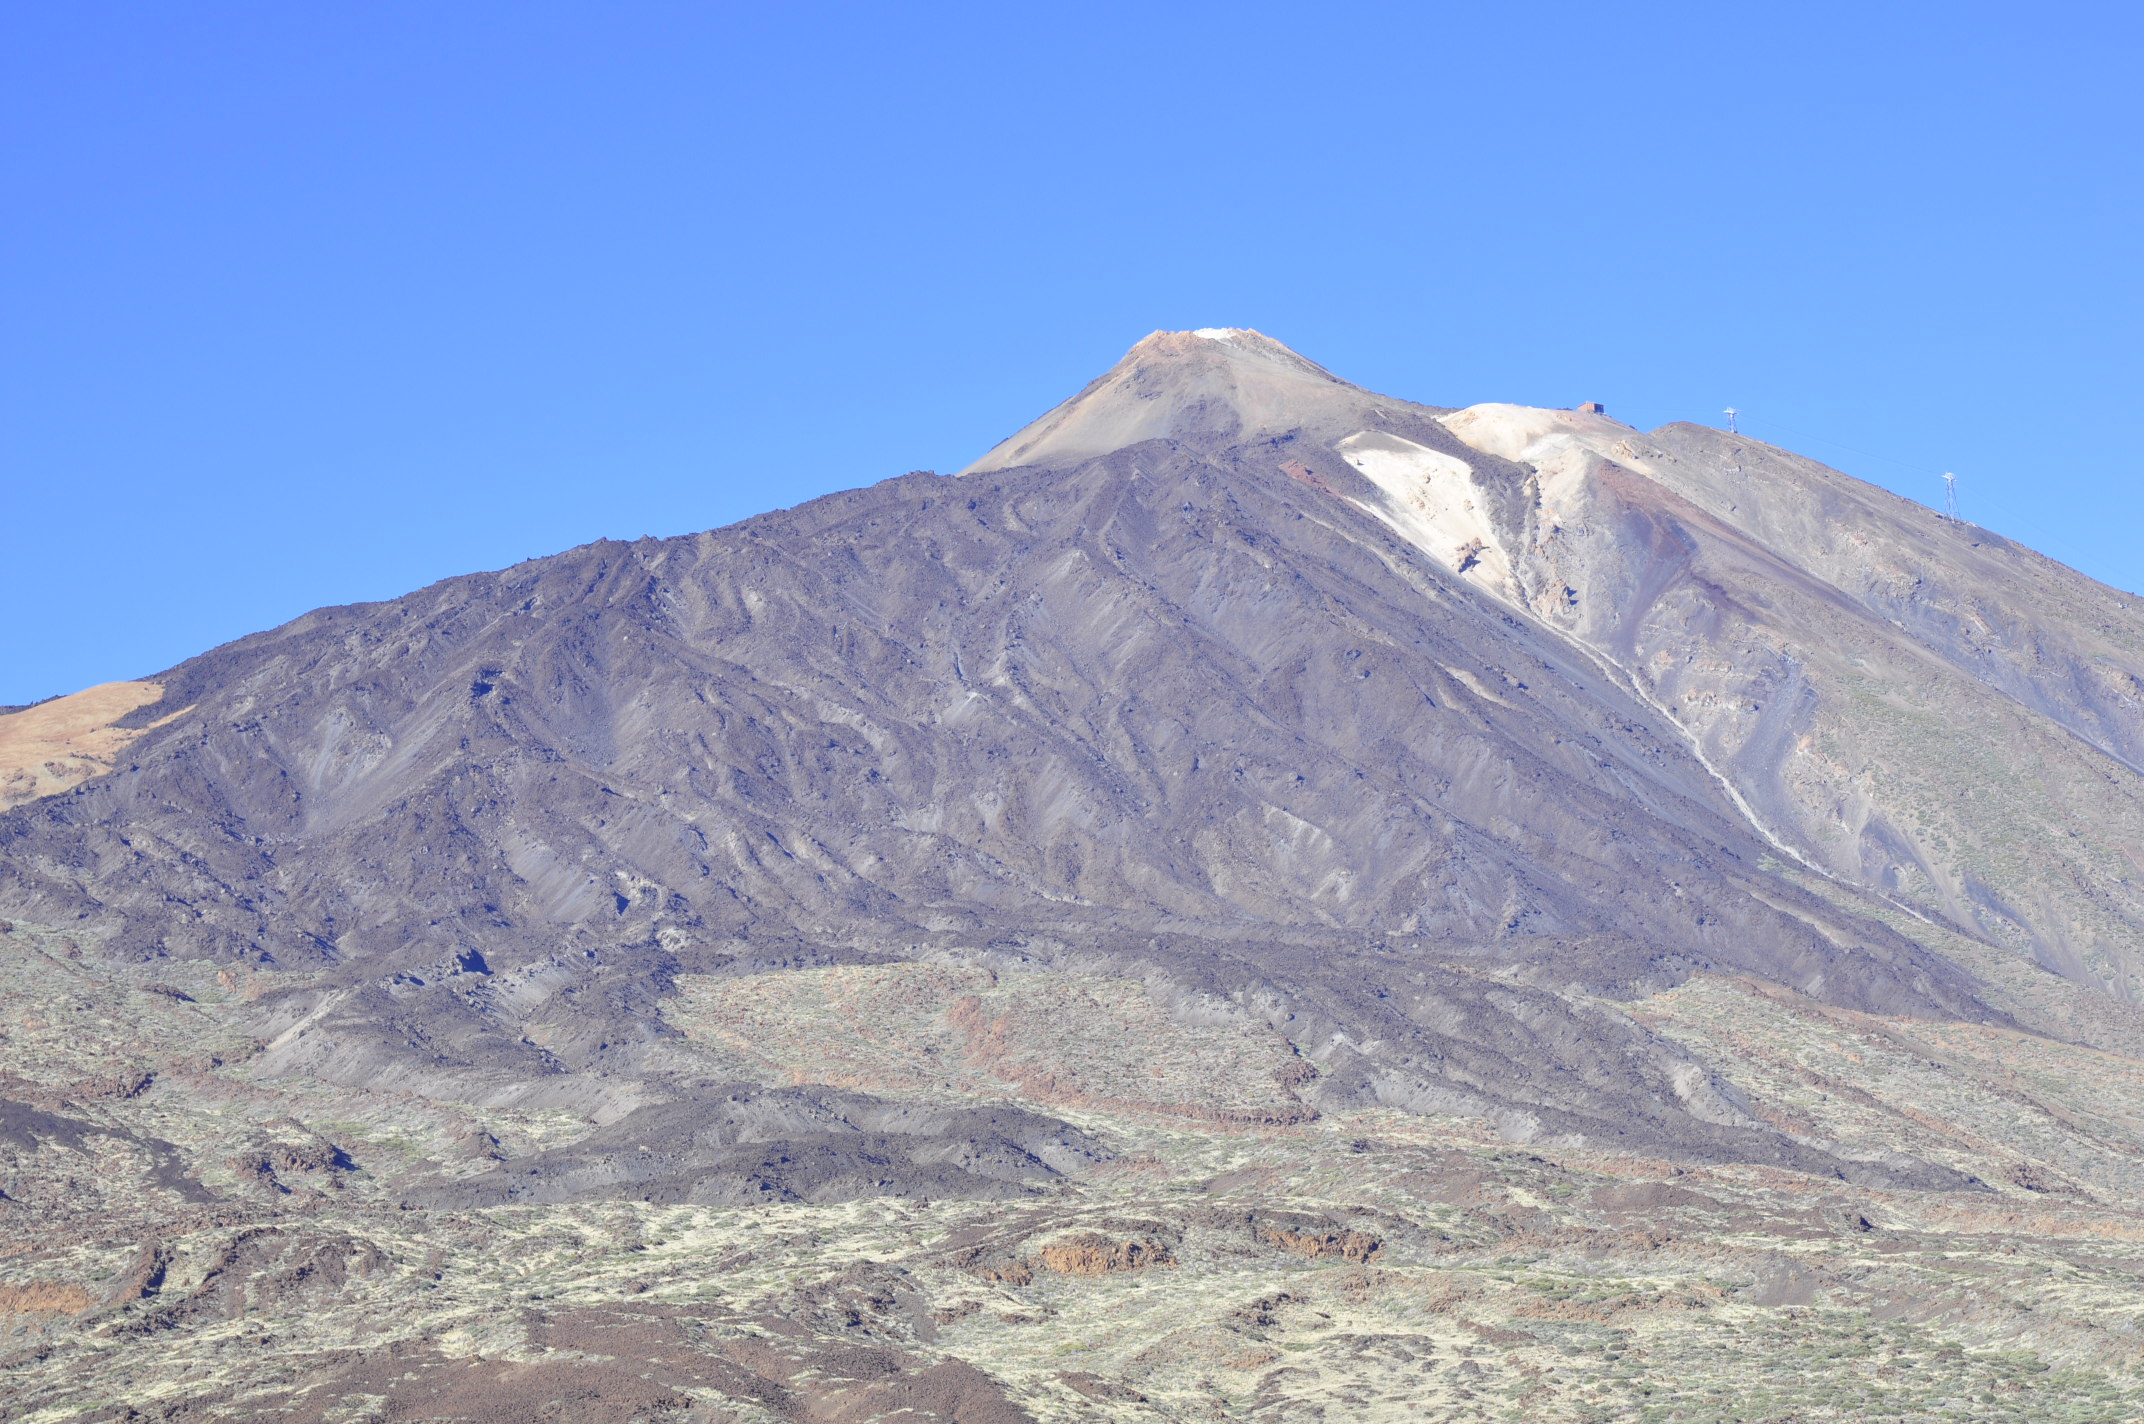 Black lava from Teide's last eruption in 1789, contrasting the older, weathered lava.